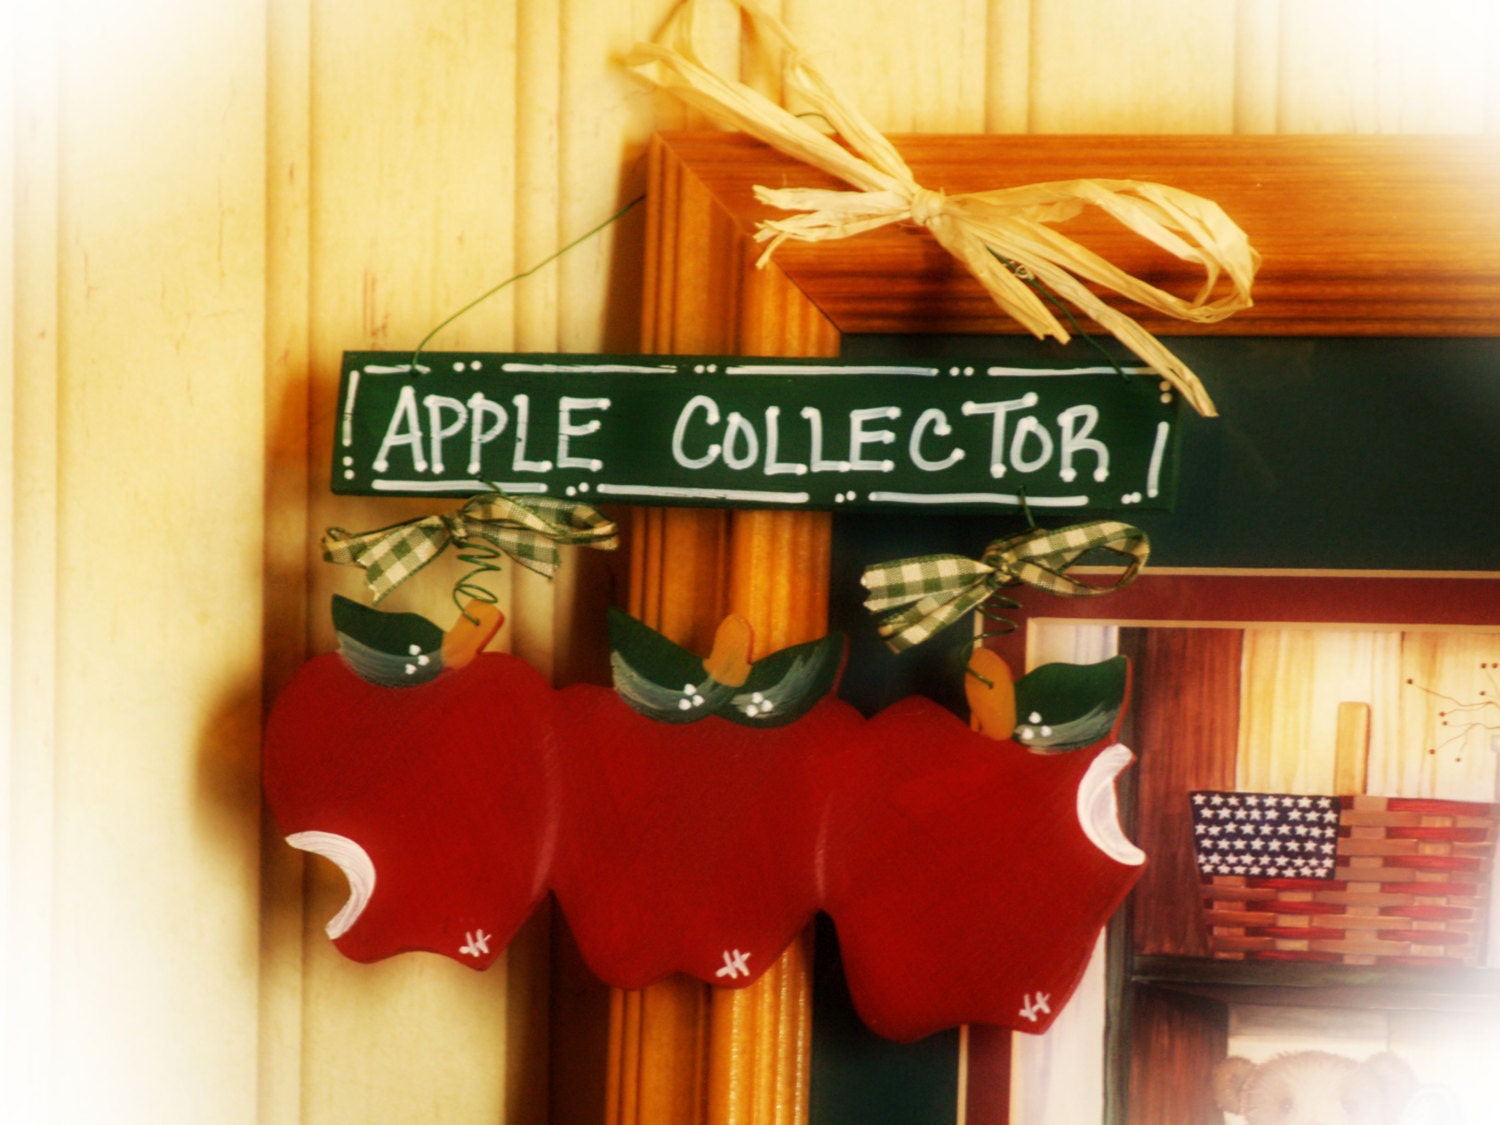 My Kitchen Wall Decor : Apples country wall decor bless my kitchen by